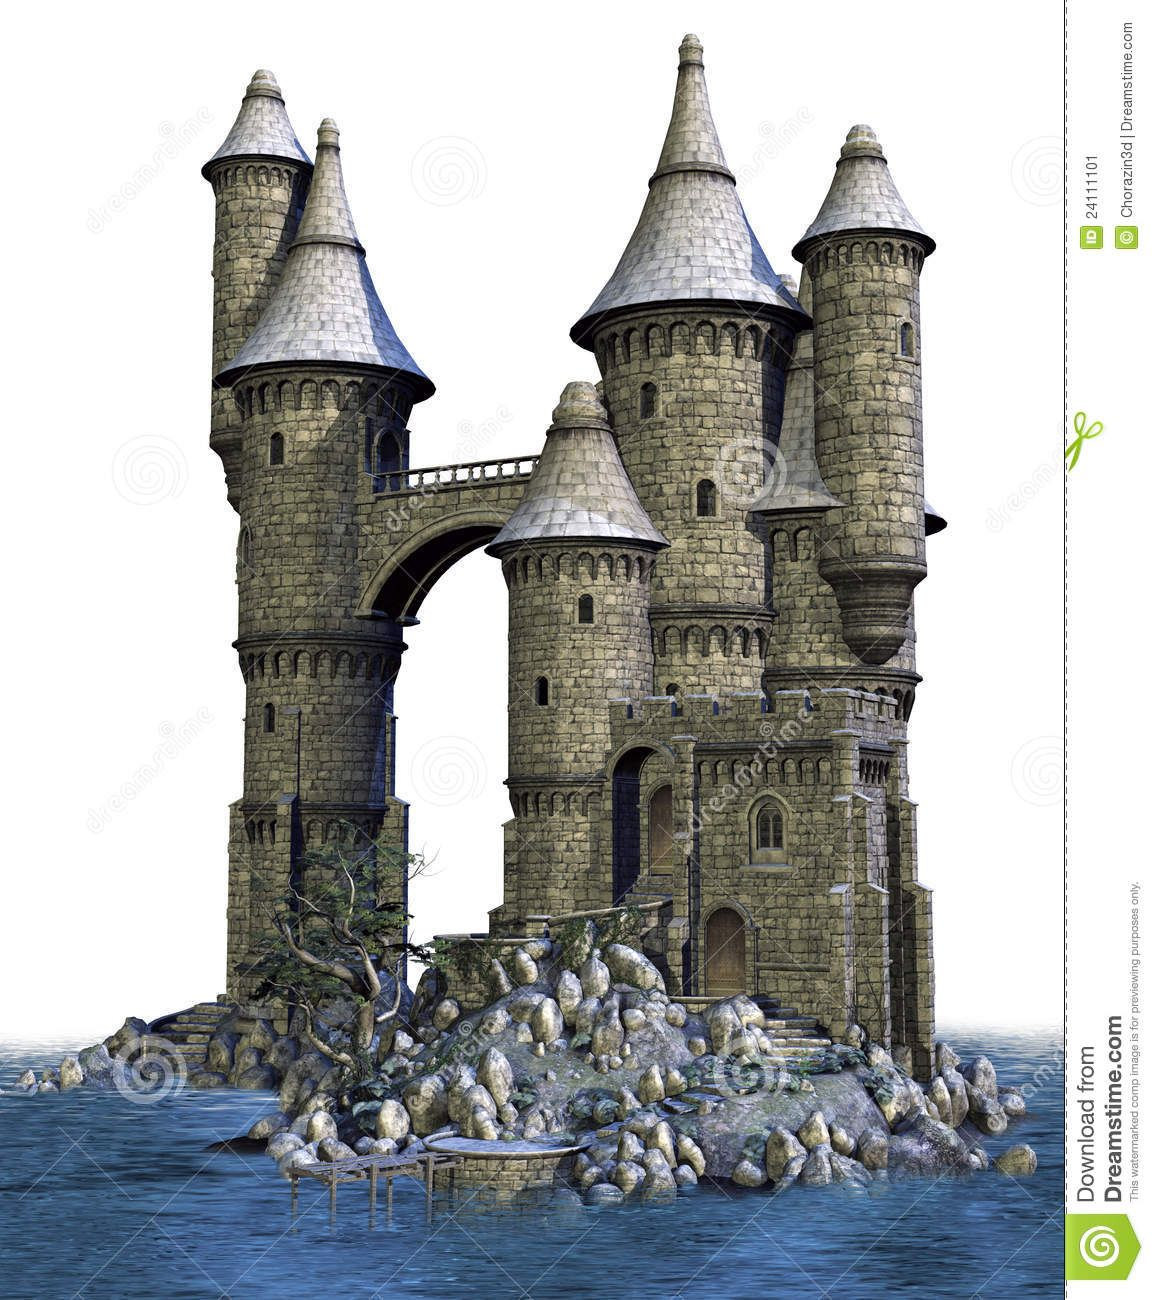 Fantasy castle on an island architecture castles for Small castle designs